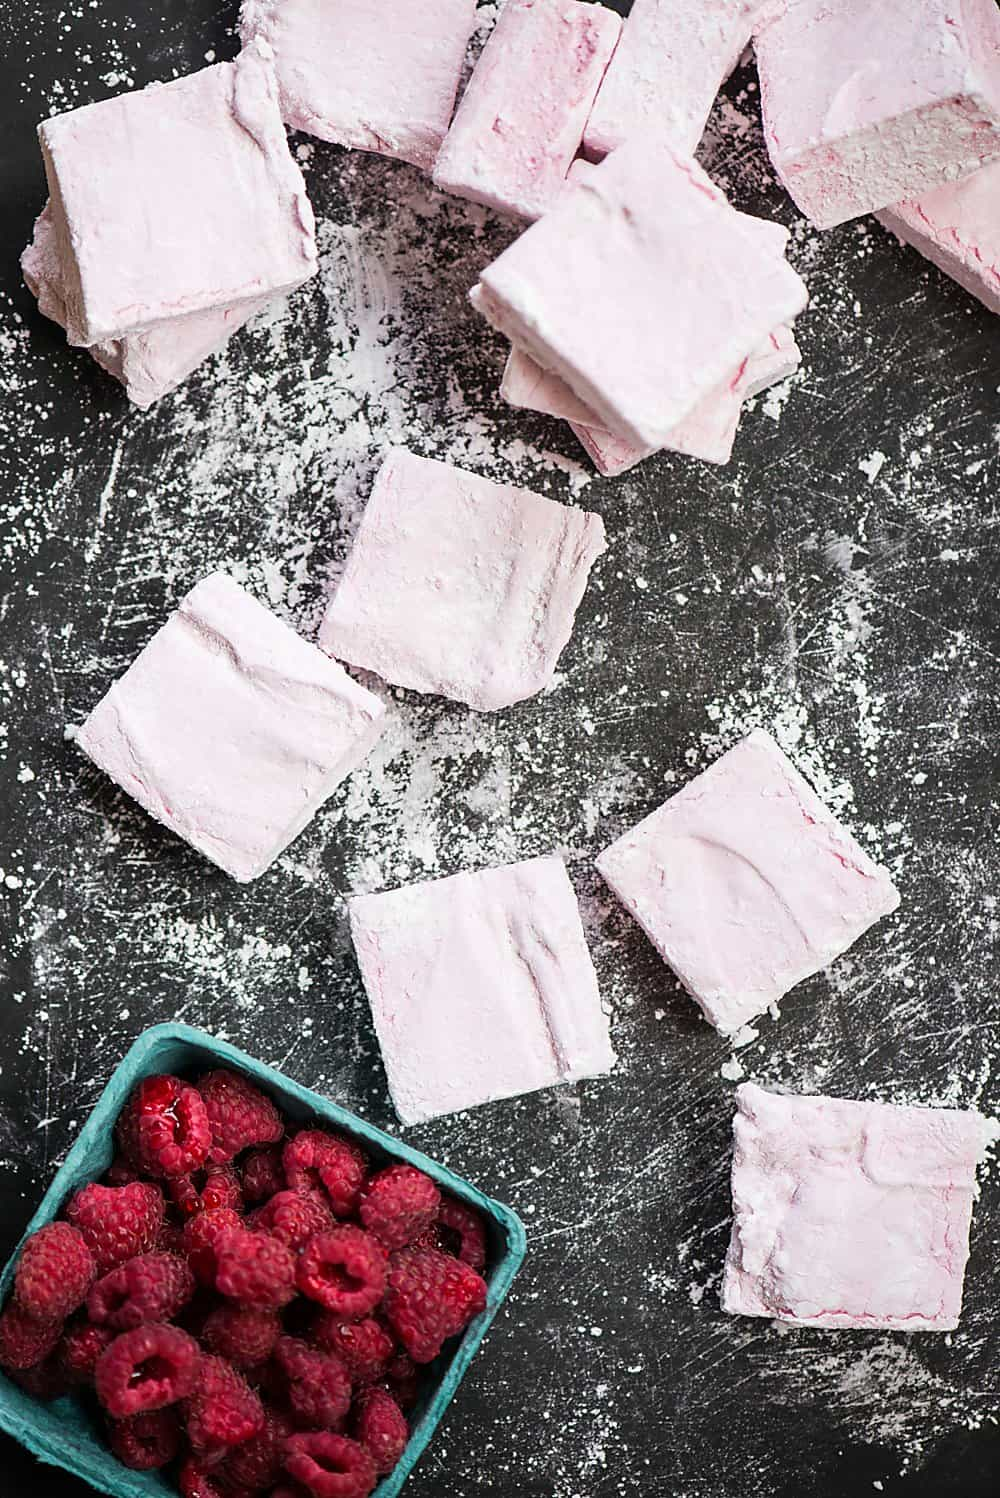 Homemade Raspberry Marshmallows, made with fresh raspberry puree, are surprisingly easy to make and are a fun summer dessert your family will love!